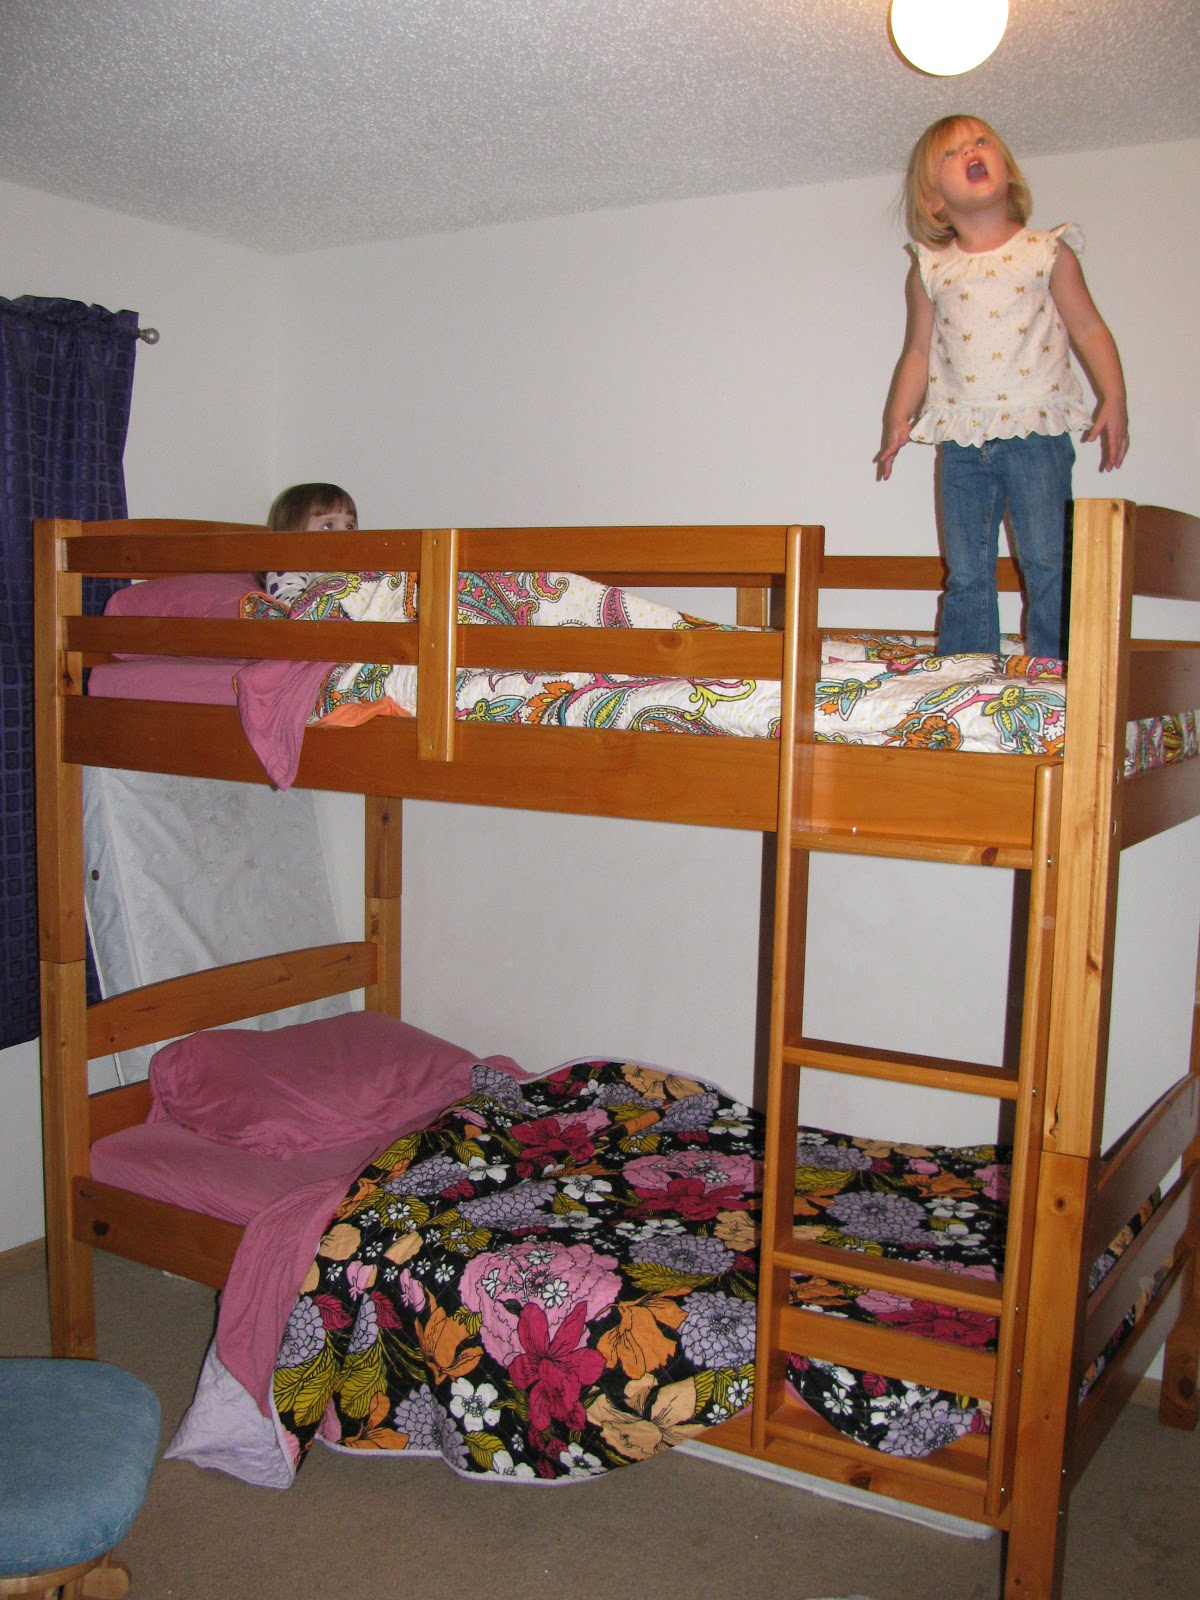 Advantages And Drawbacks Of Strong Wooden Loft Bed With Stairs 10 Tips for Selecting the Best Bunk Bed for Your Kids - Bunk Bed Buying  Guide